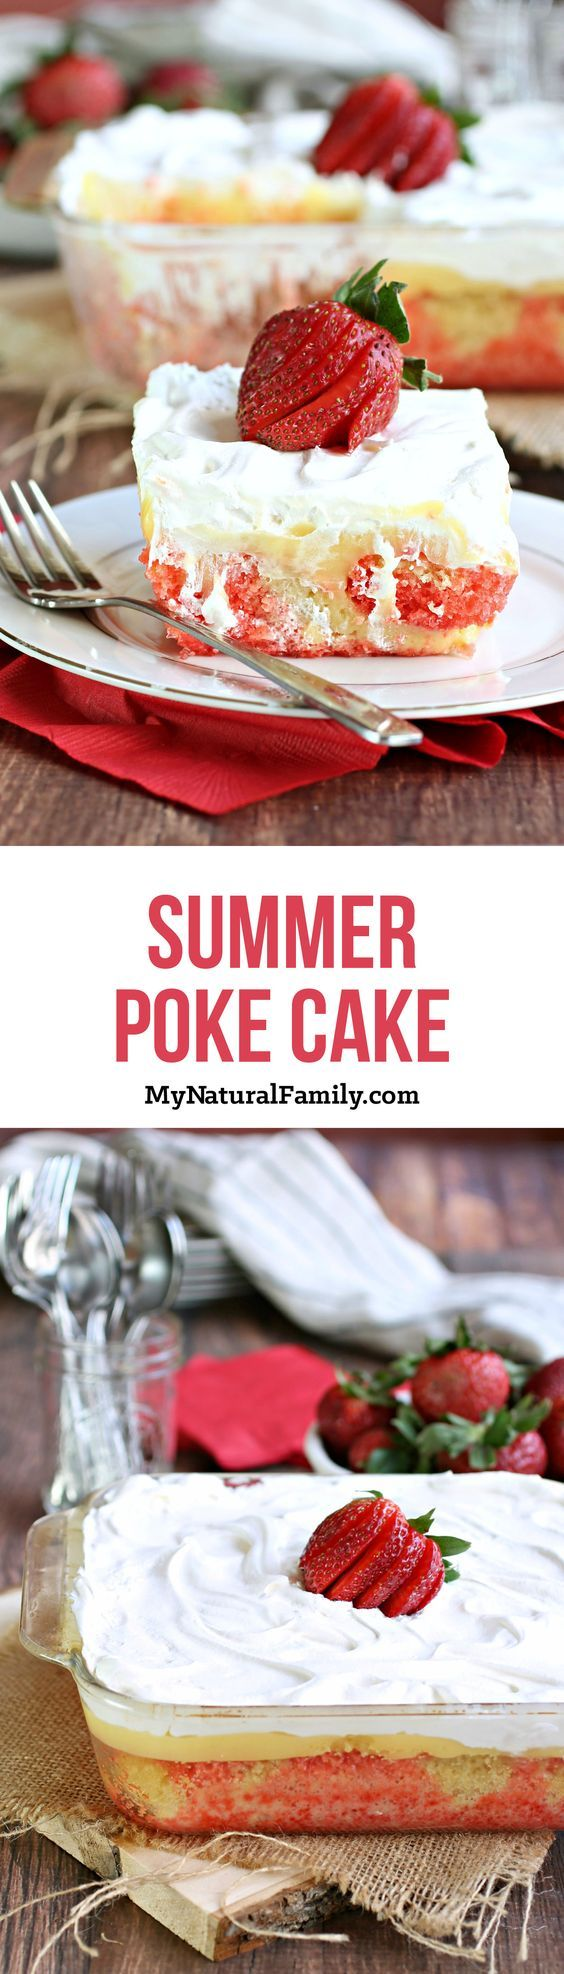 Summer Pudding Poke Cake Recipe - All this takes is a box cake mix, Jello, pudding and Cool Whip. I love how easy it is and how it is so light and refreshing.